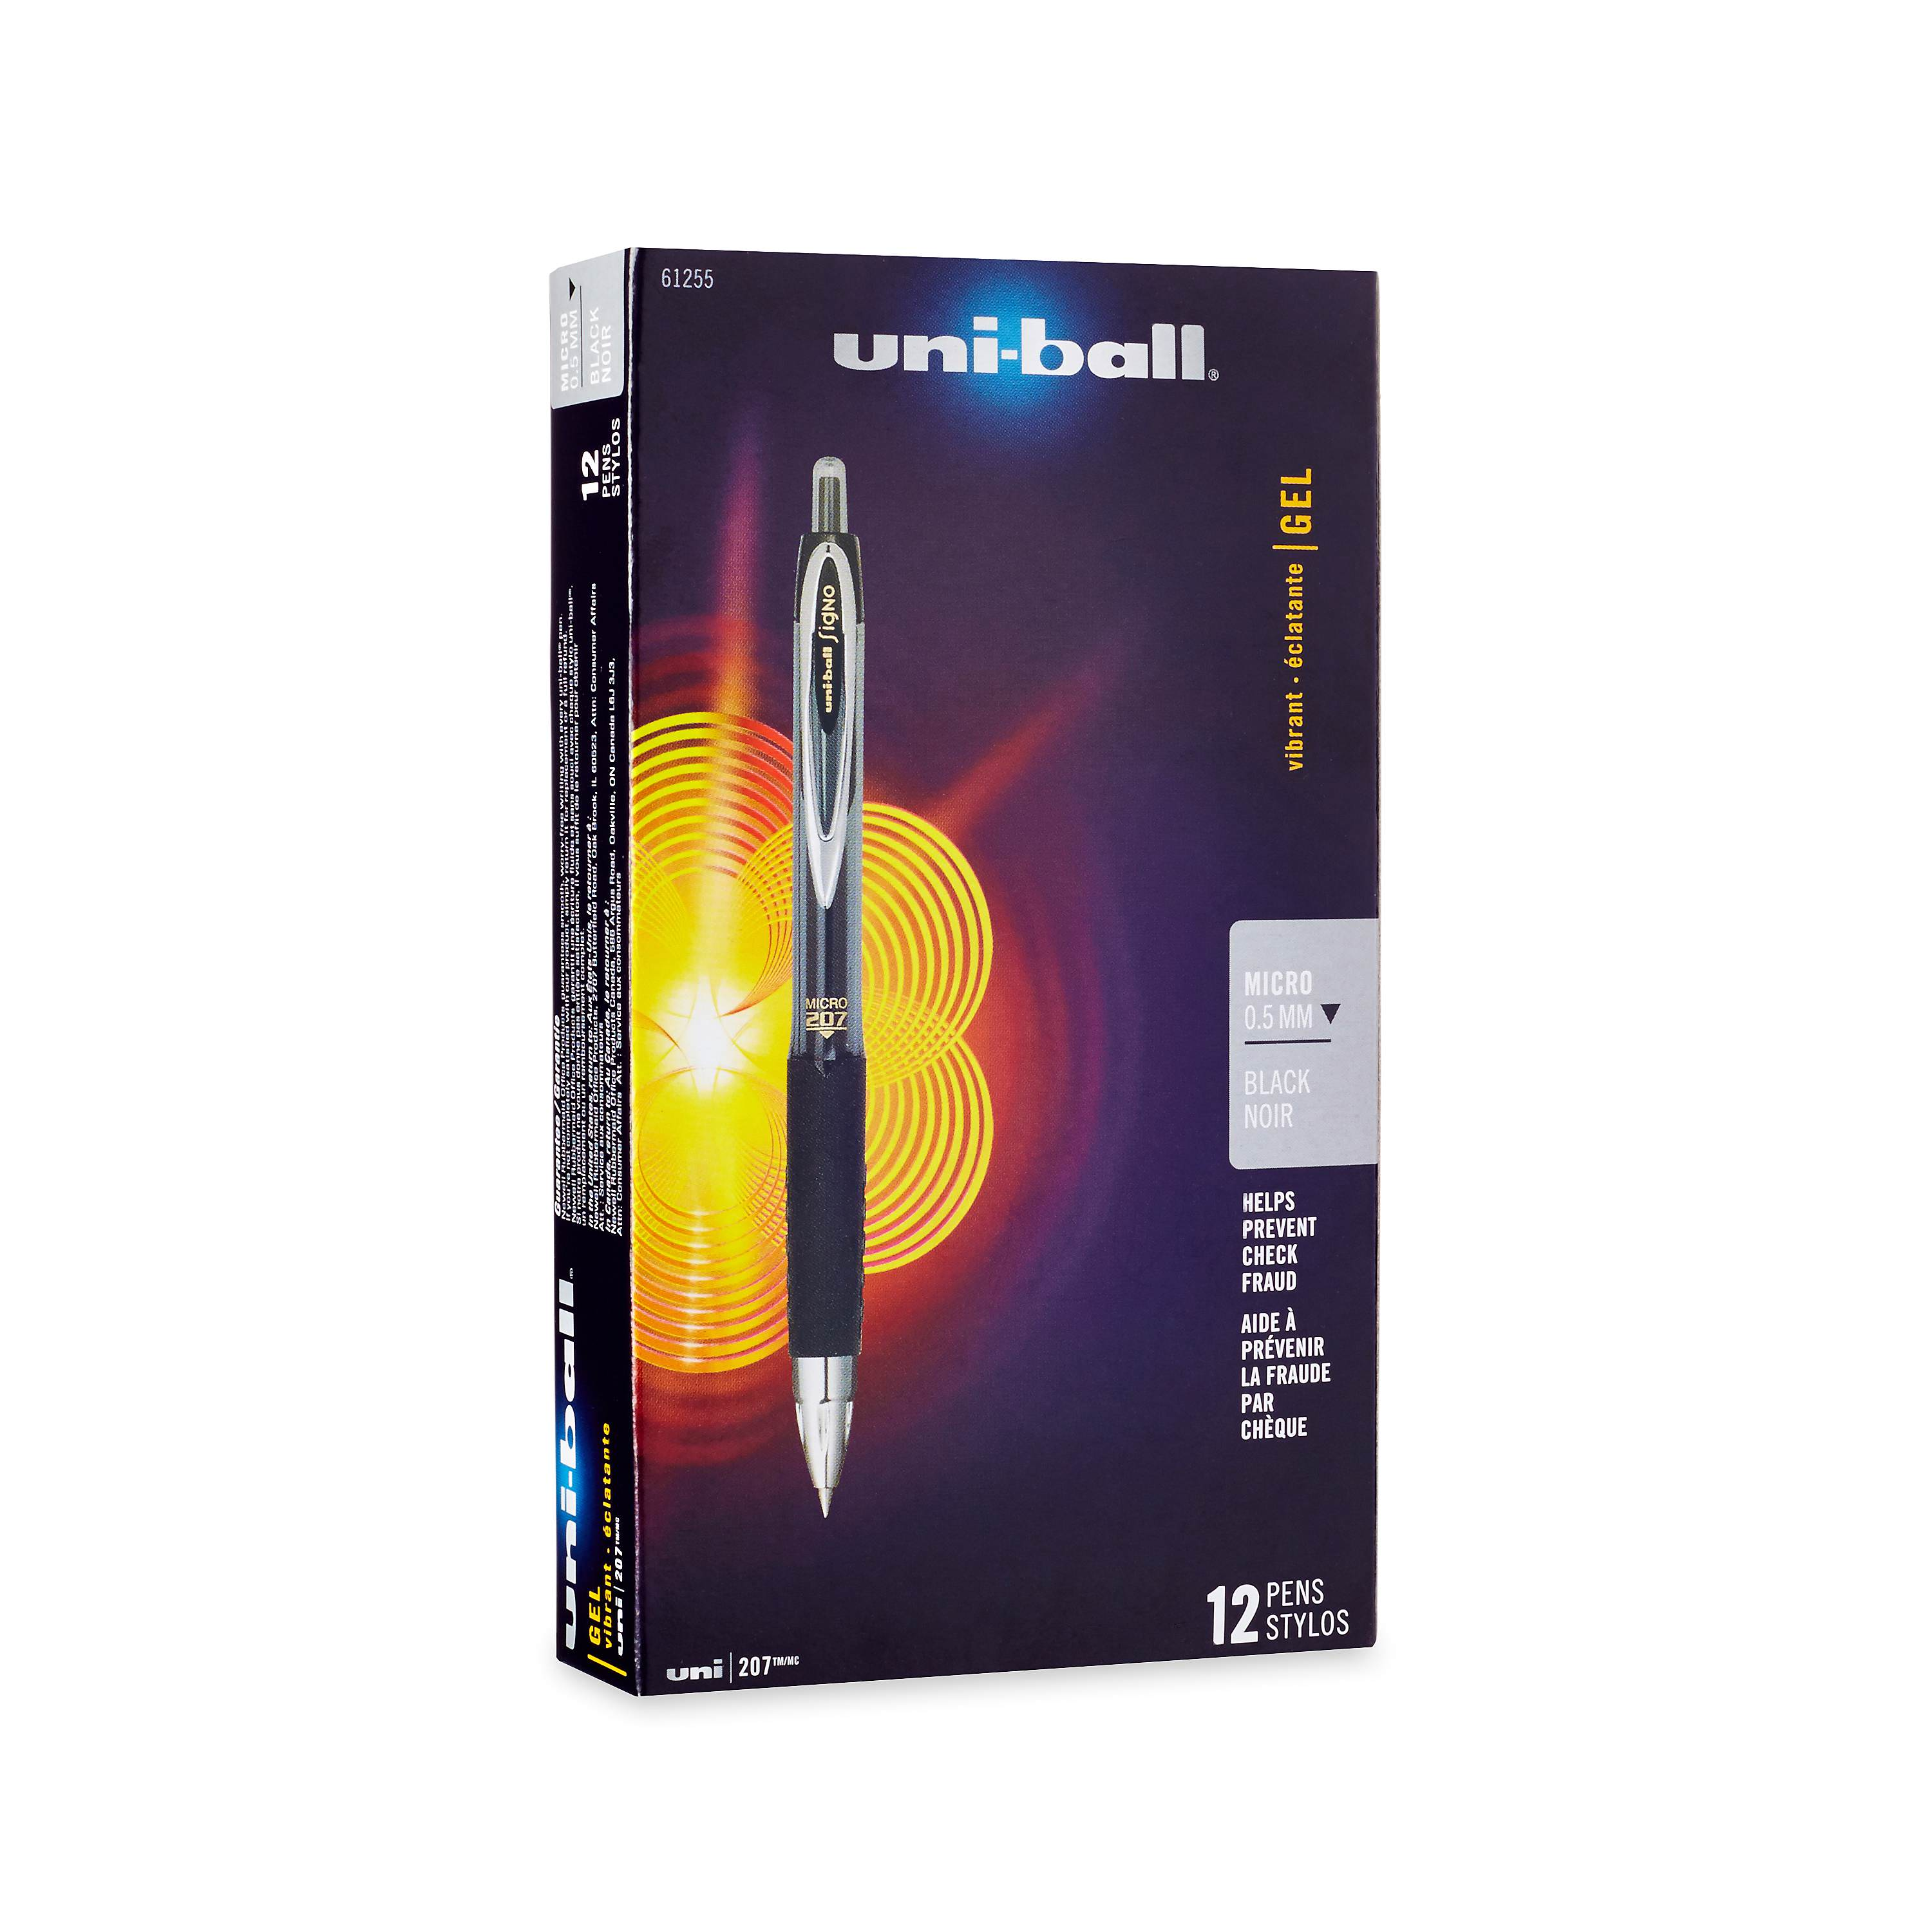 uni-ball 207 Retractable Gel Pens, Micro Point, Black, Box of 12